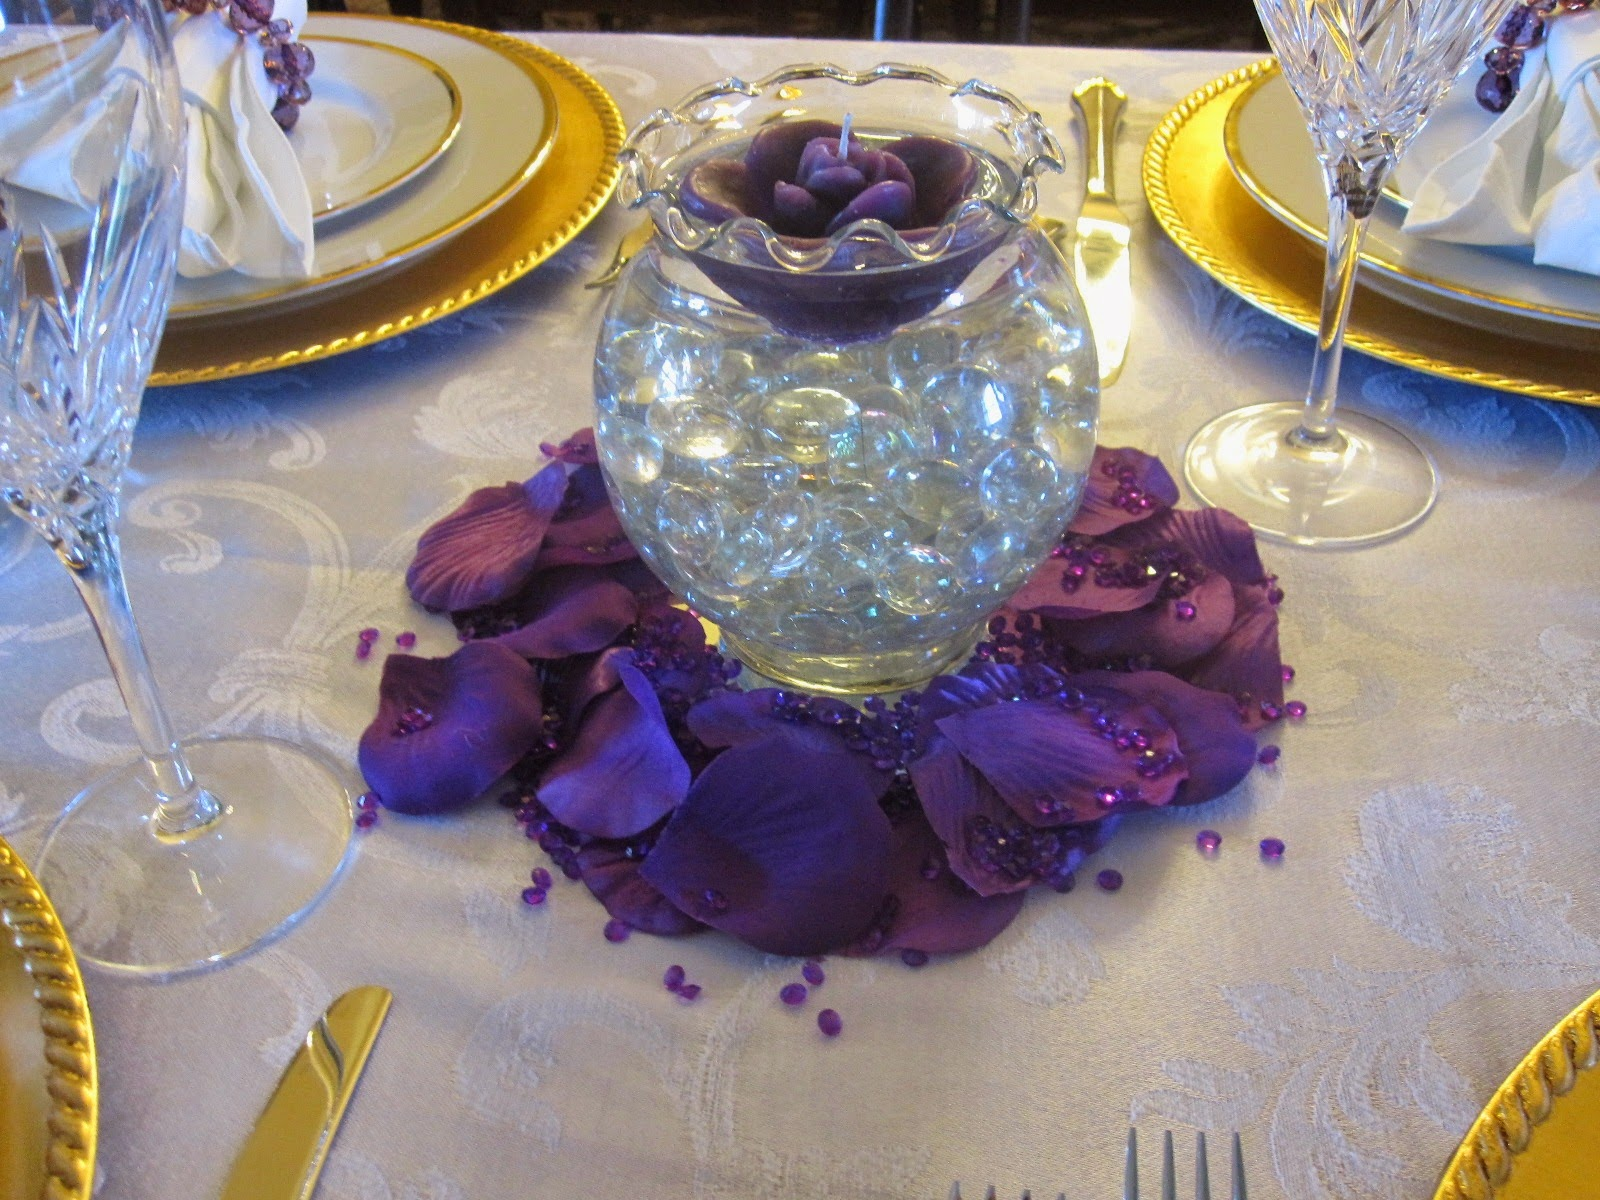 Creative hospitality how to make a floating candle centerpiece the basic supplies you will need are the floating candles a glass bowl or vase with a large enough open area for your candleor candlesto float on reviewsmspy